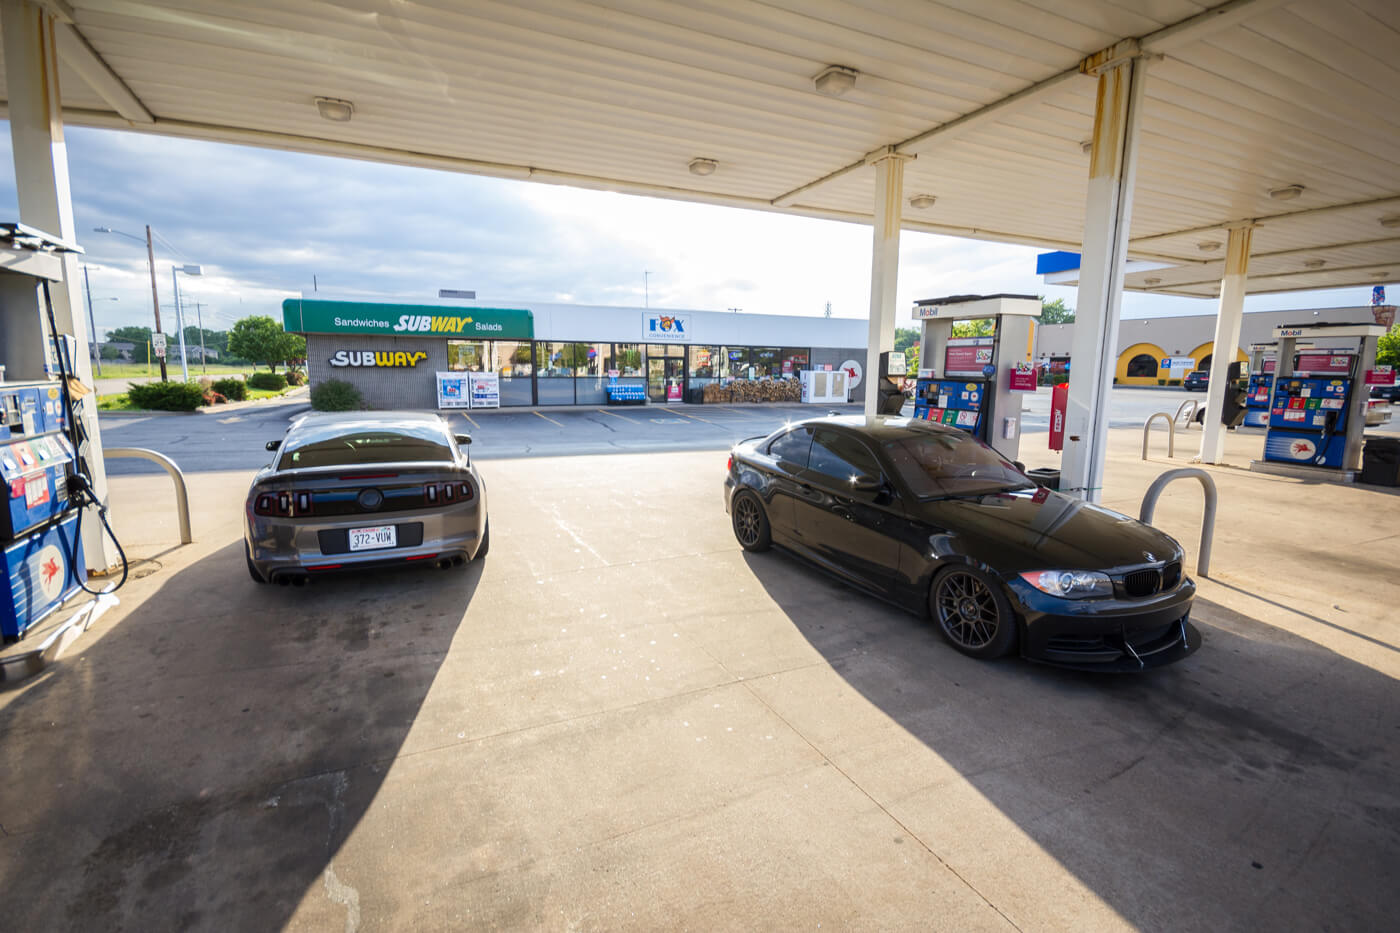 A Mustang and BMW at the gas station filling up!